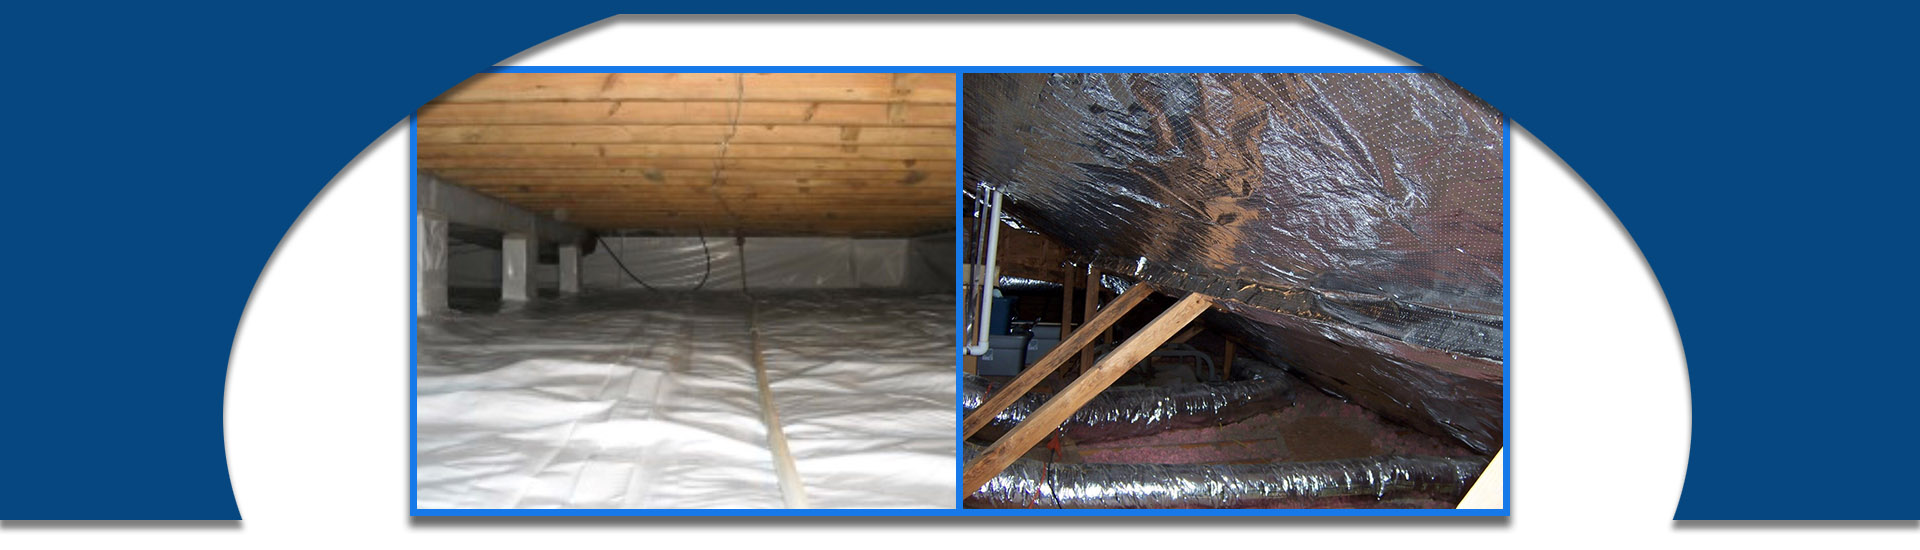 Mouse Proof Insulation : Warren nj insulation contractor rodent proofing